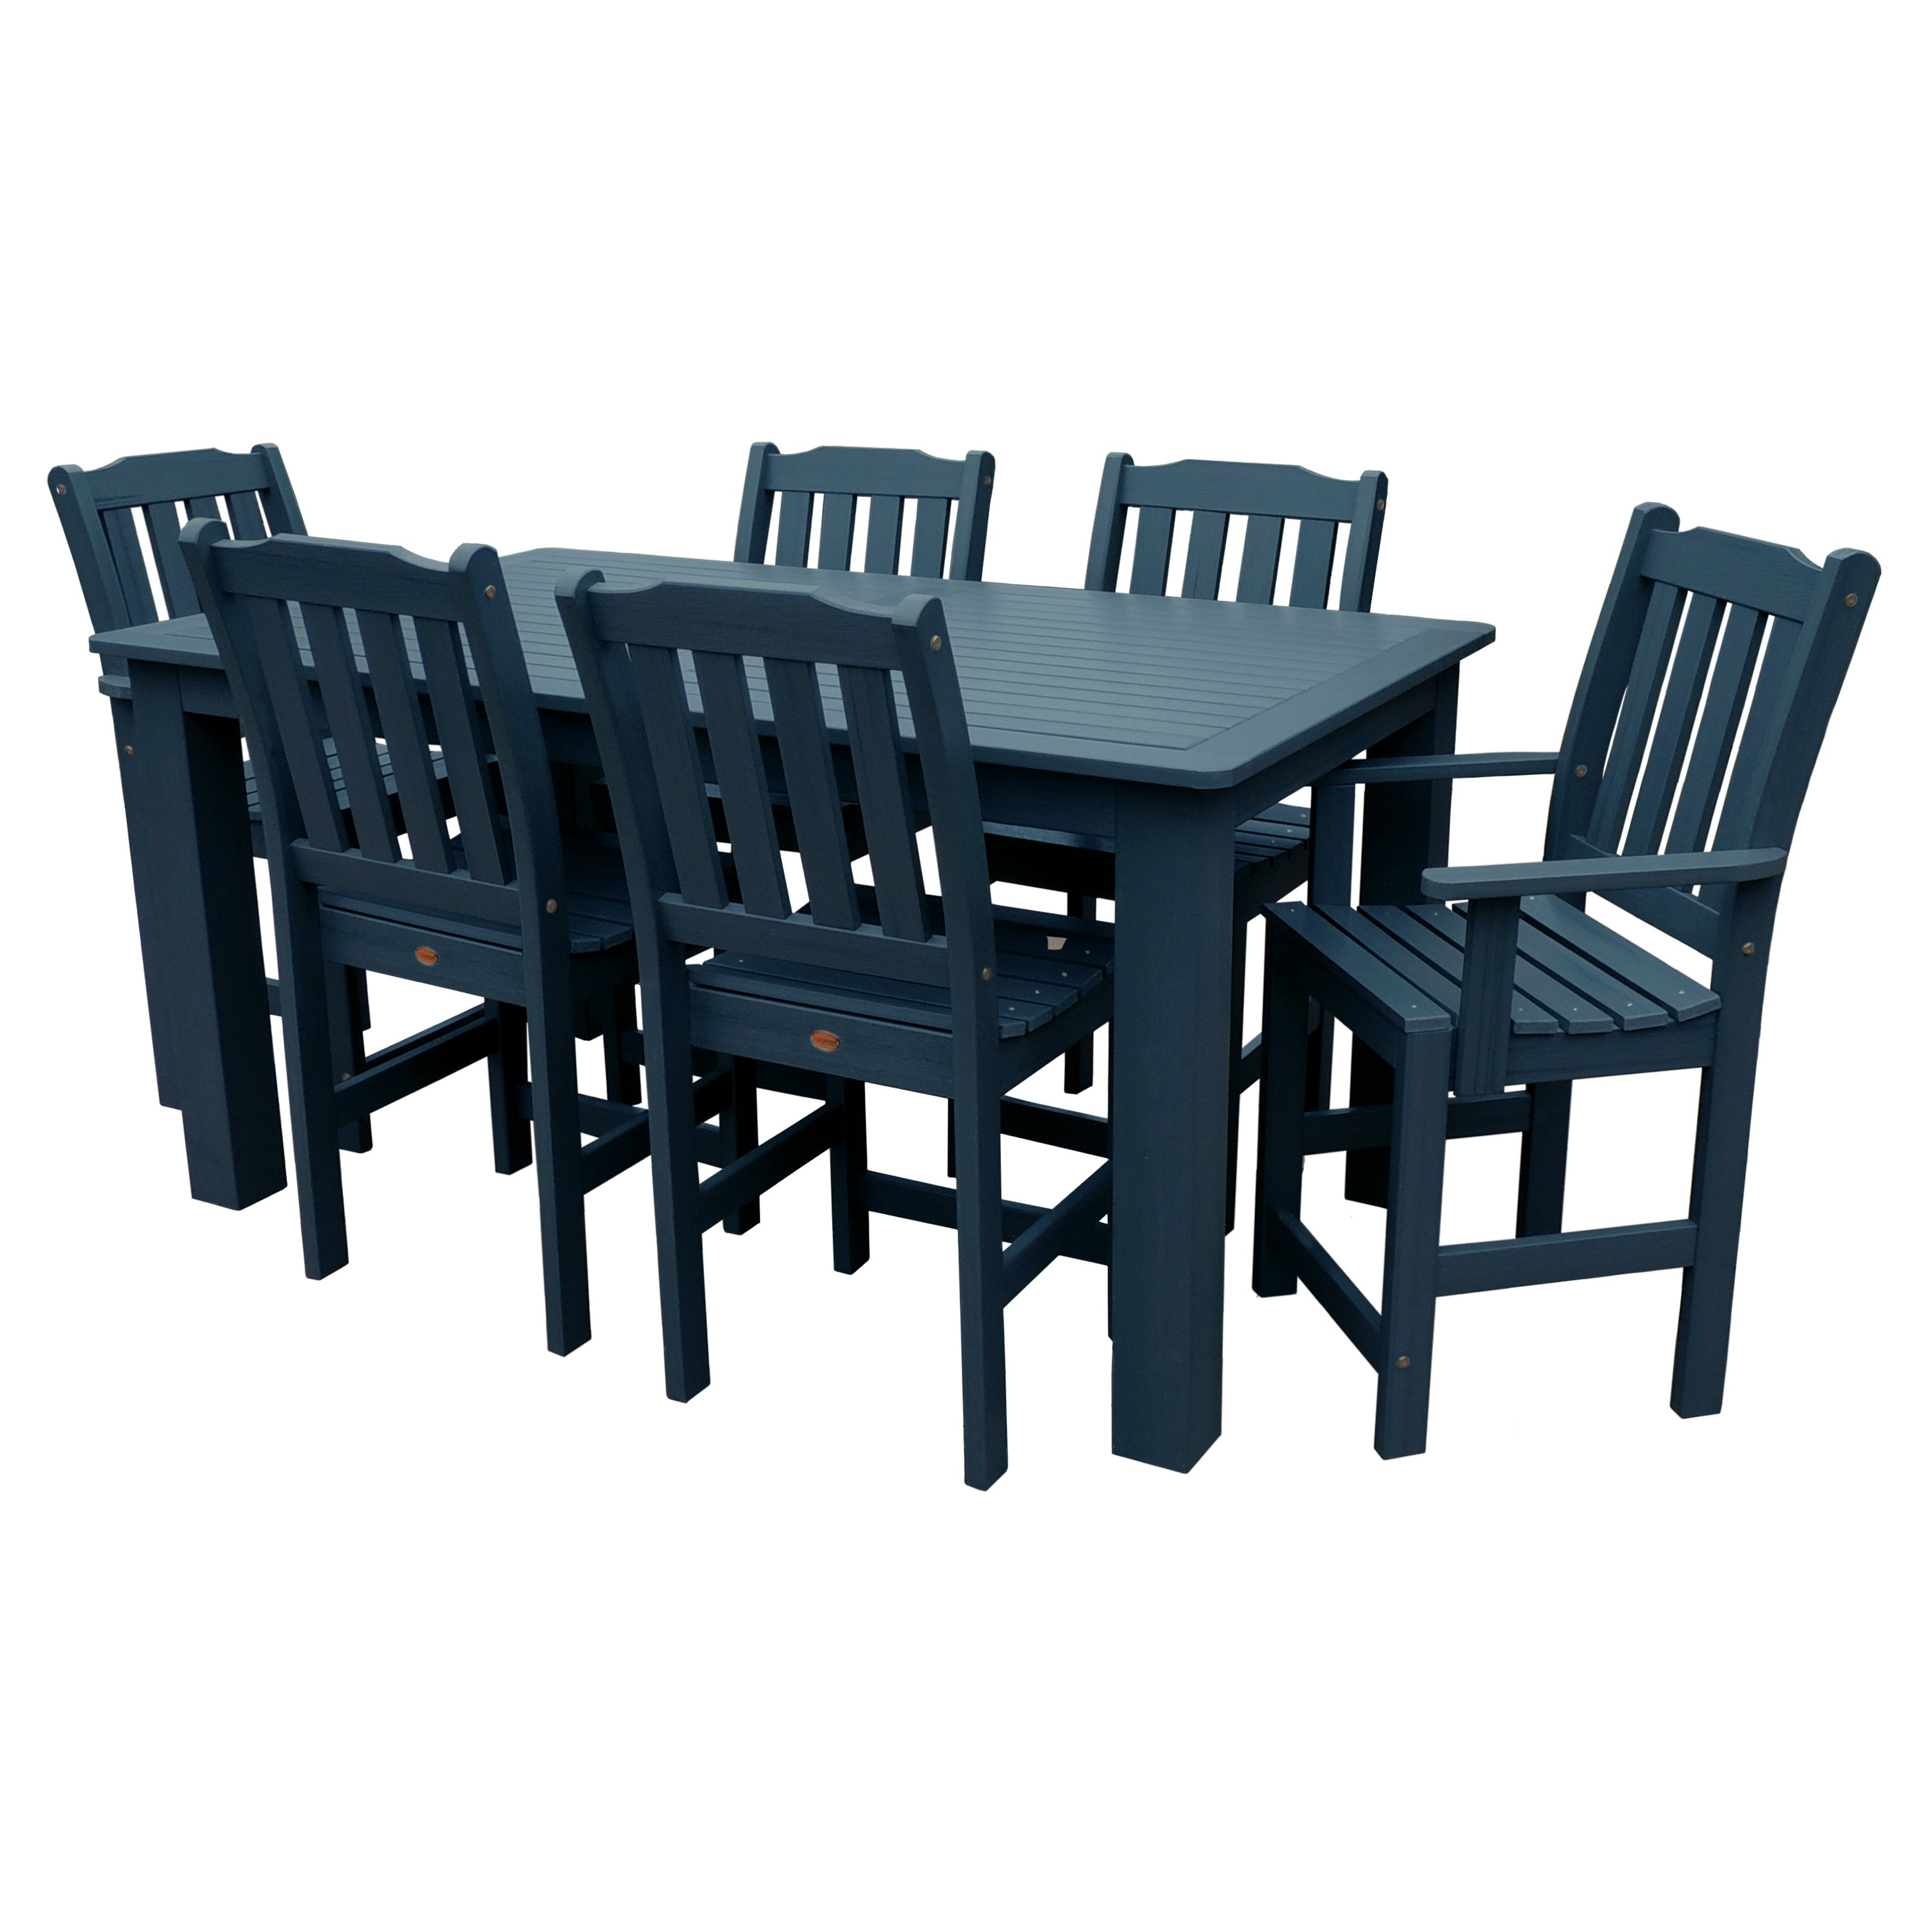 highwood Lehigh Recycled Plastic 7 pc. Rectangular Gathering Height Patio Dining Room Set by Highwood USA Inc